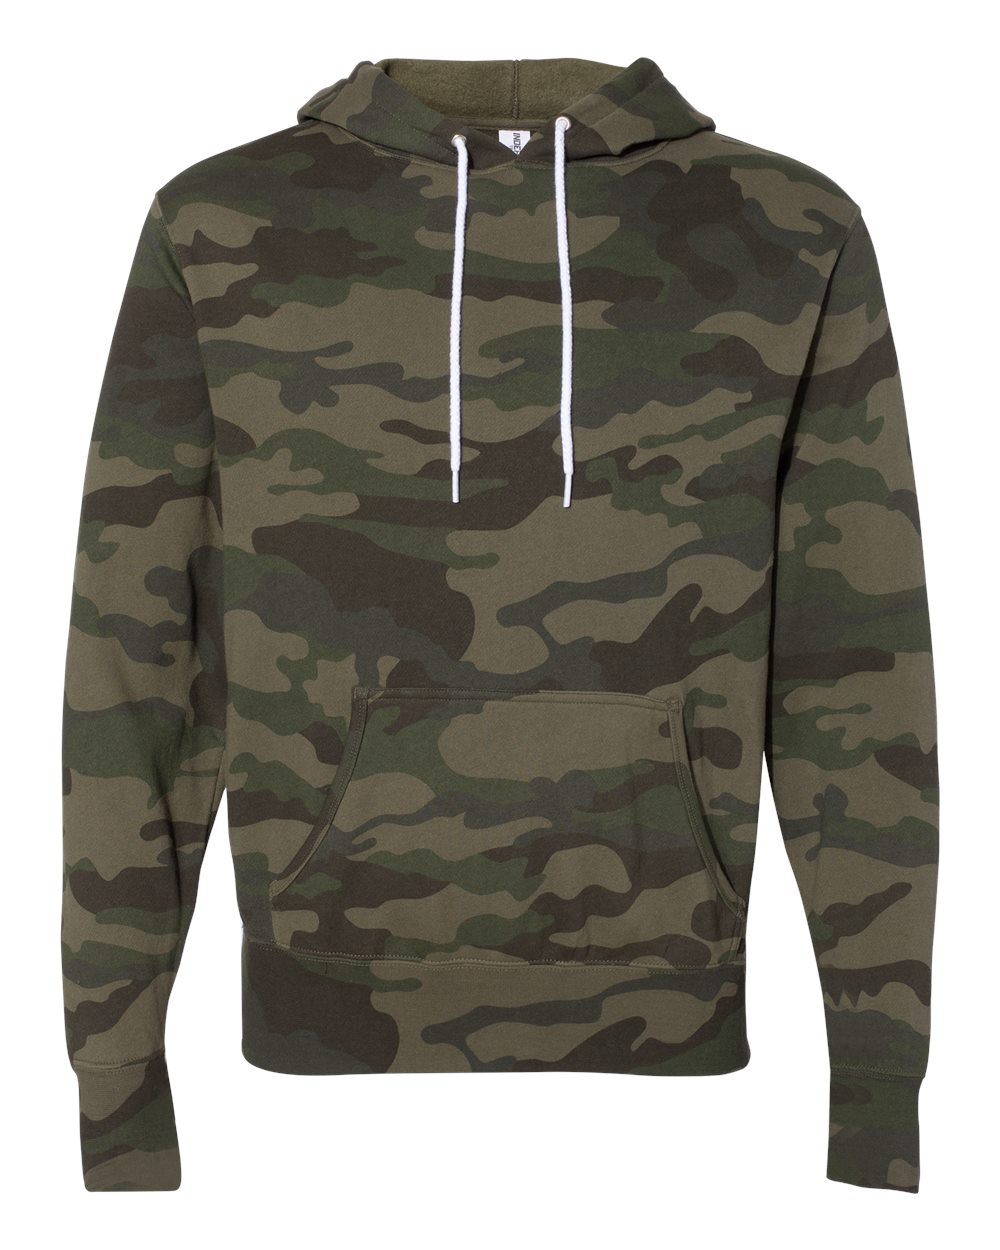 Independent-Trading-Co-Unisex-Hooded-Pullover-Blank-Plain-AFX90UN-up-to-3XL thumbnail 18